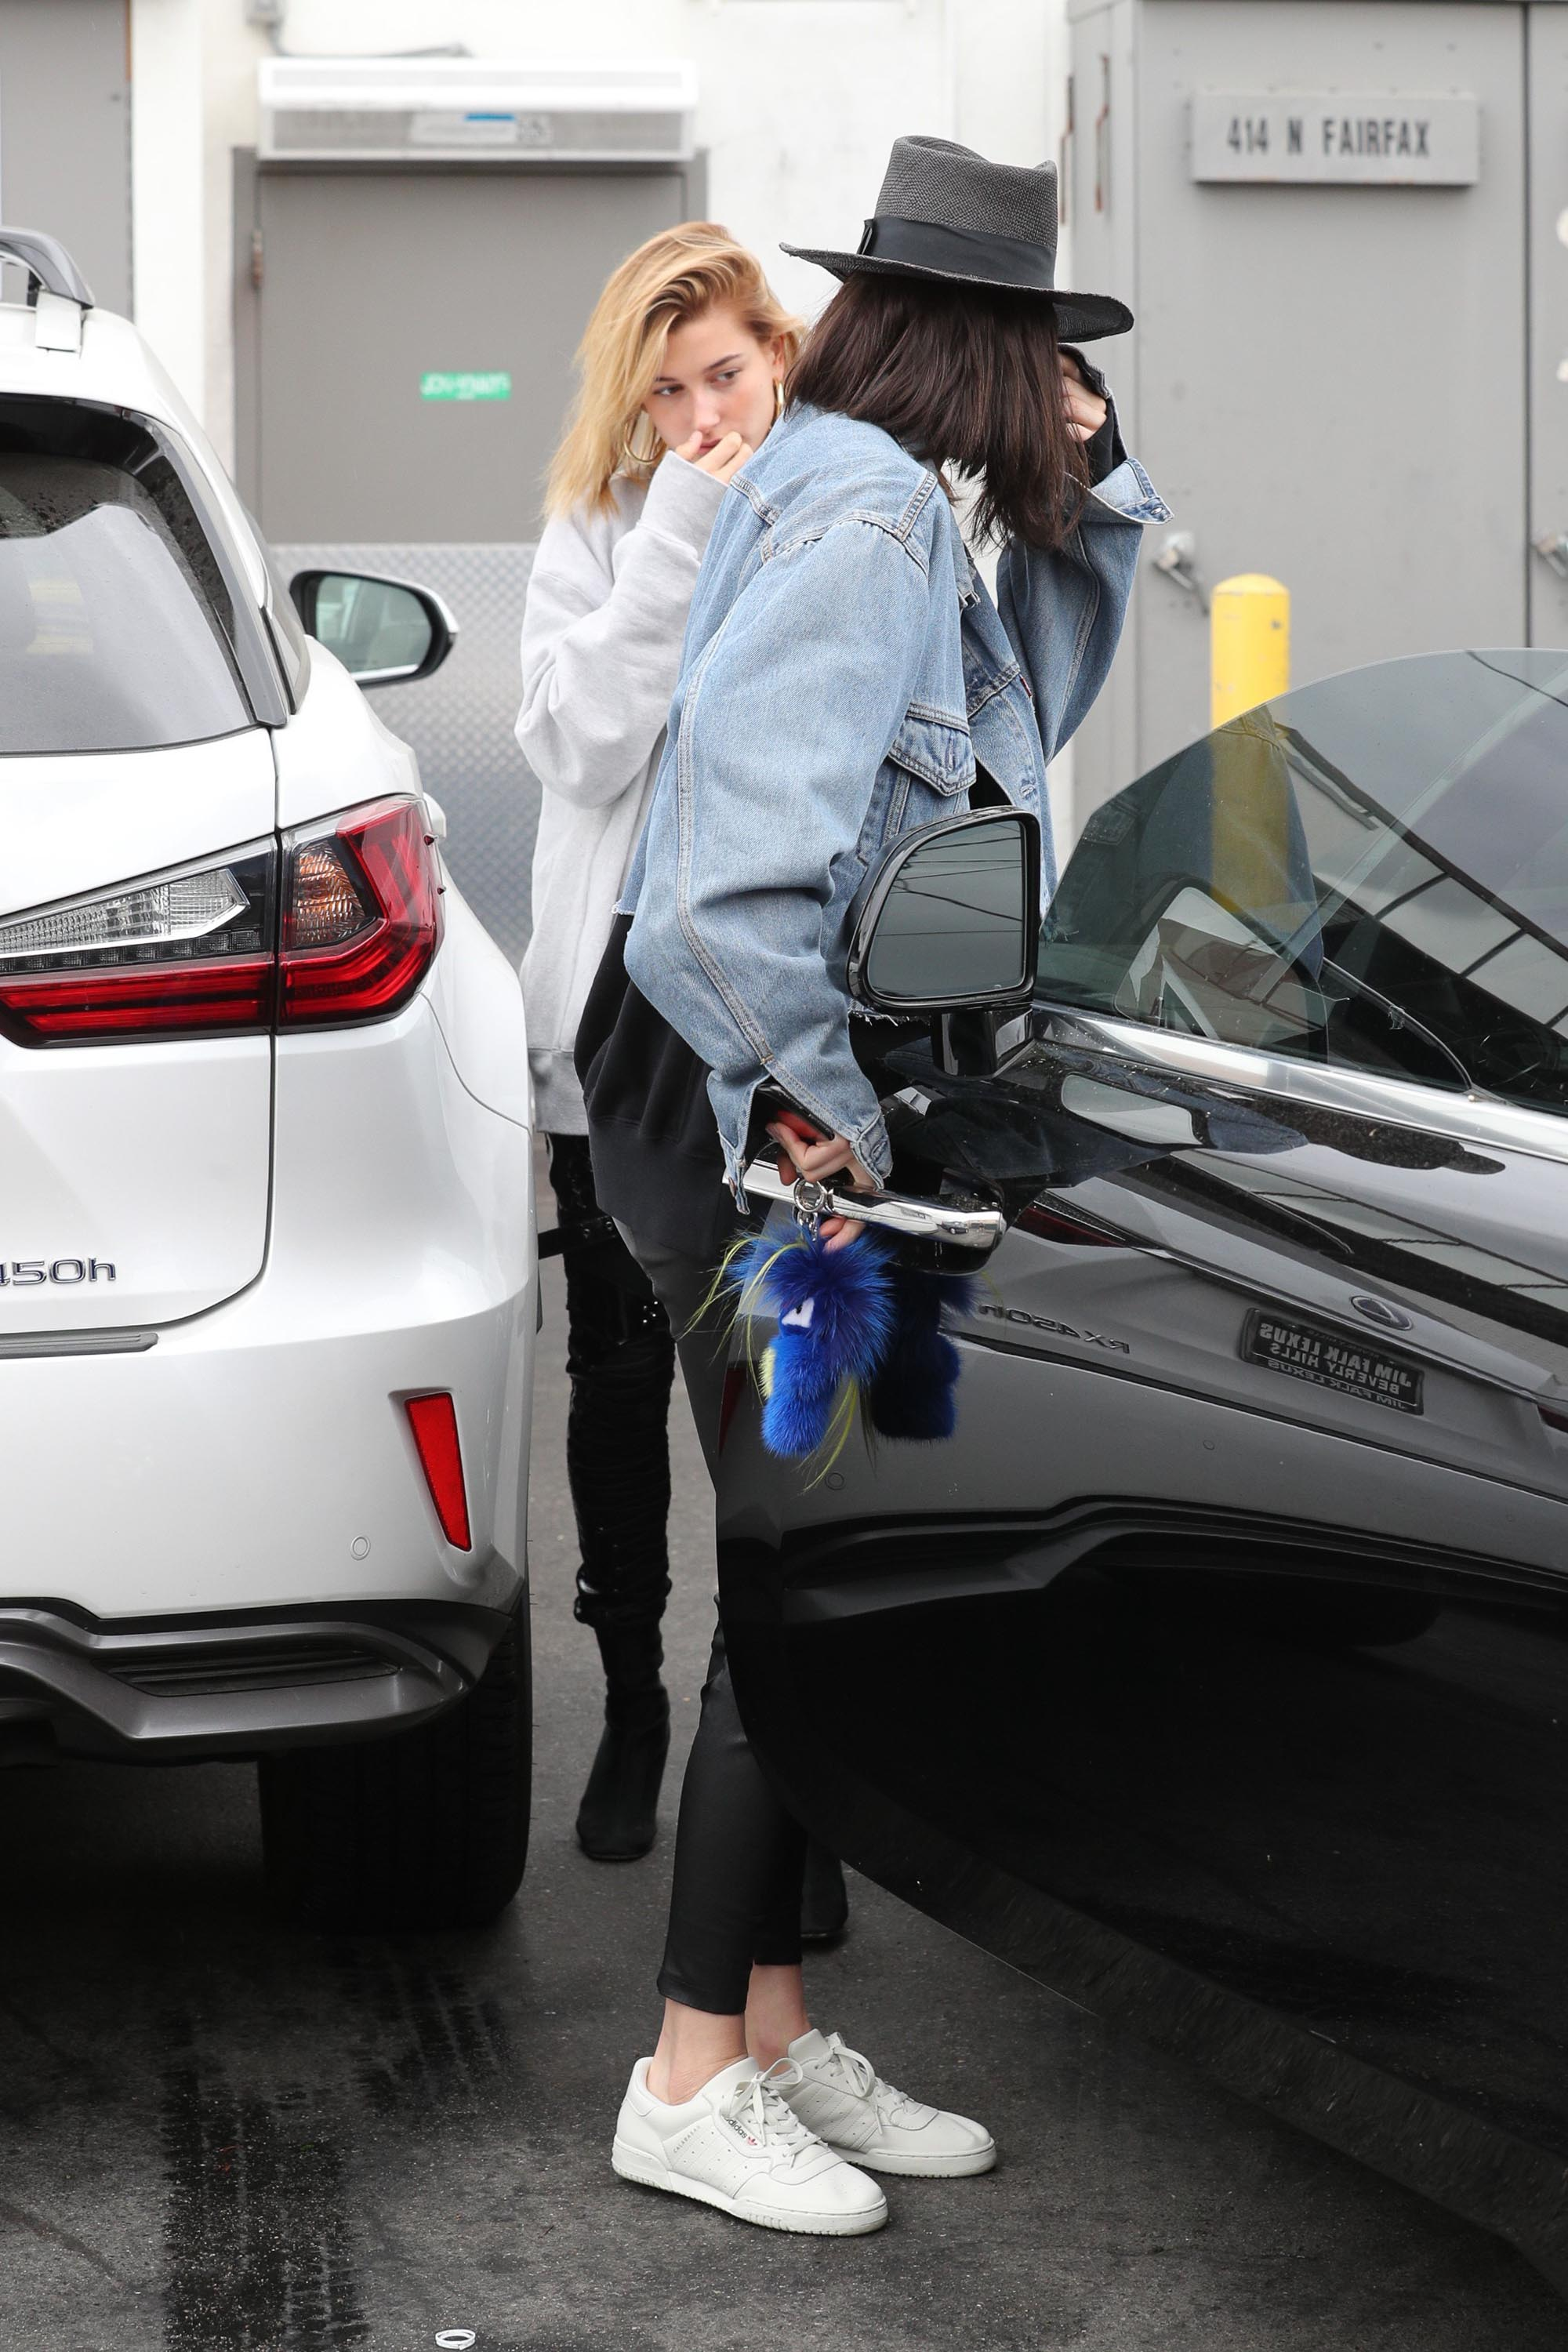 Kendall Jenner leaving a hair salon in LA